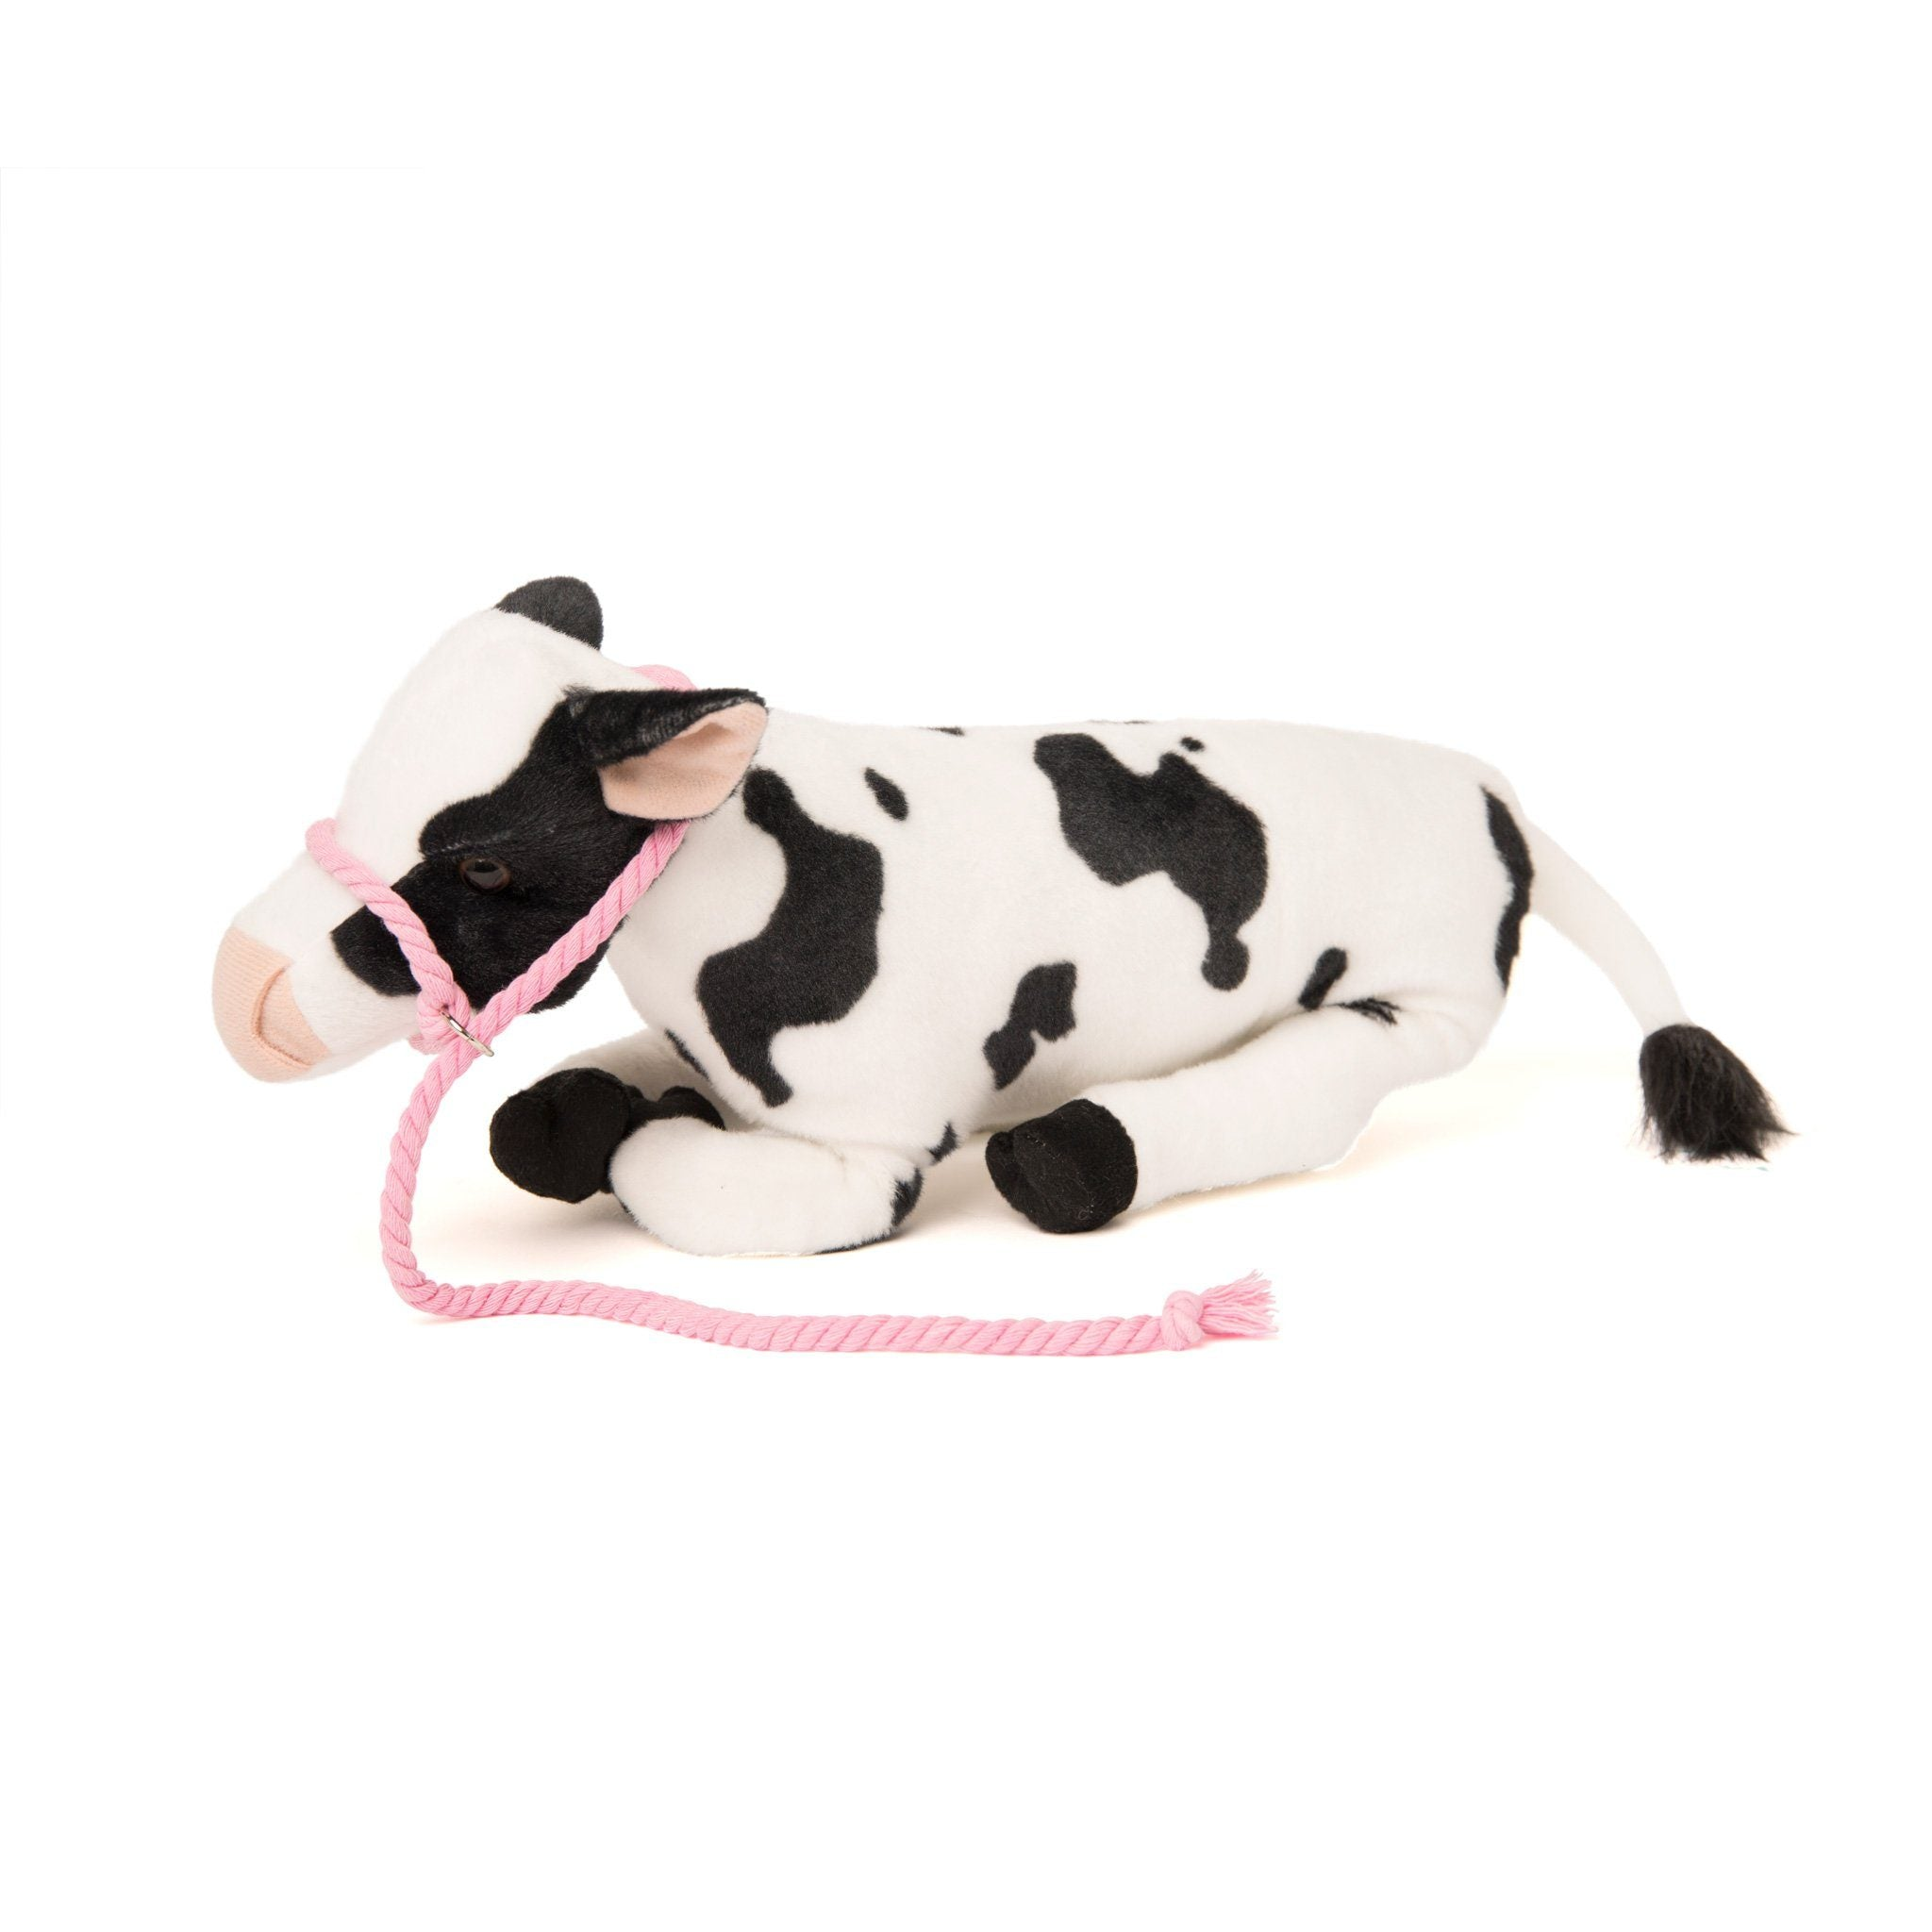 "Plush poseable high quality cow with pink halter. Fits all 18"" dolls. Maplelea.com"